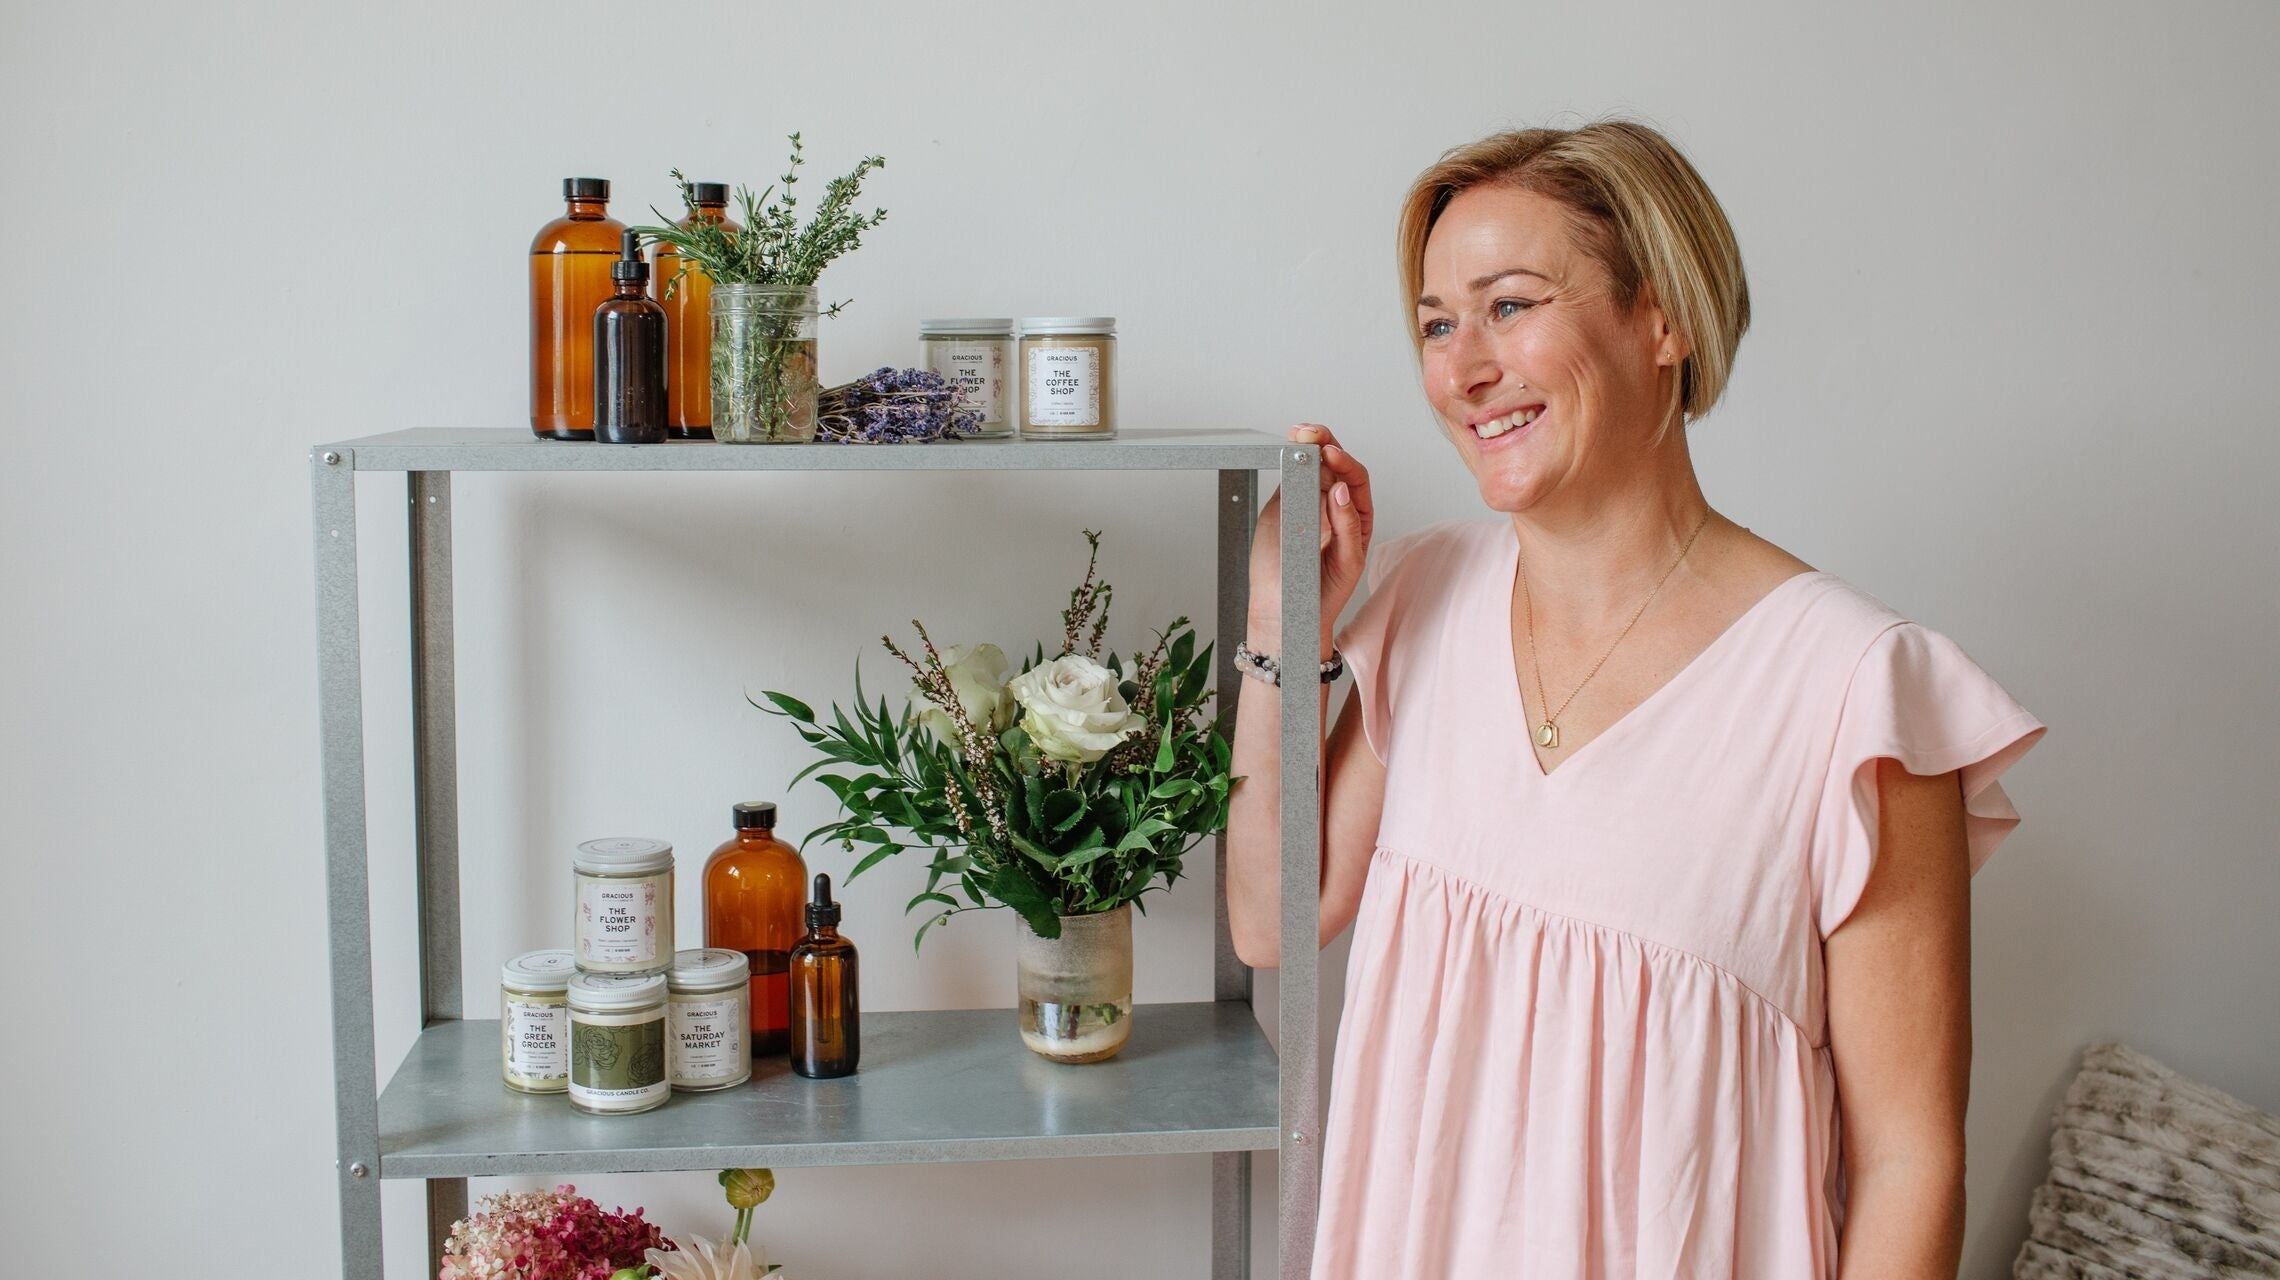 About Gracious Candle Co.